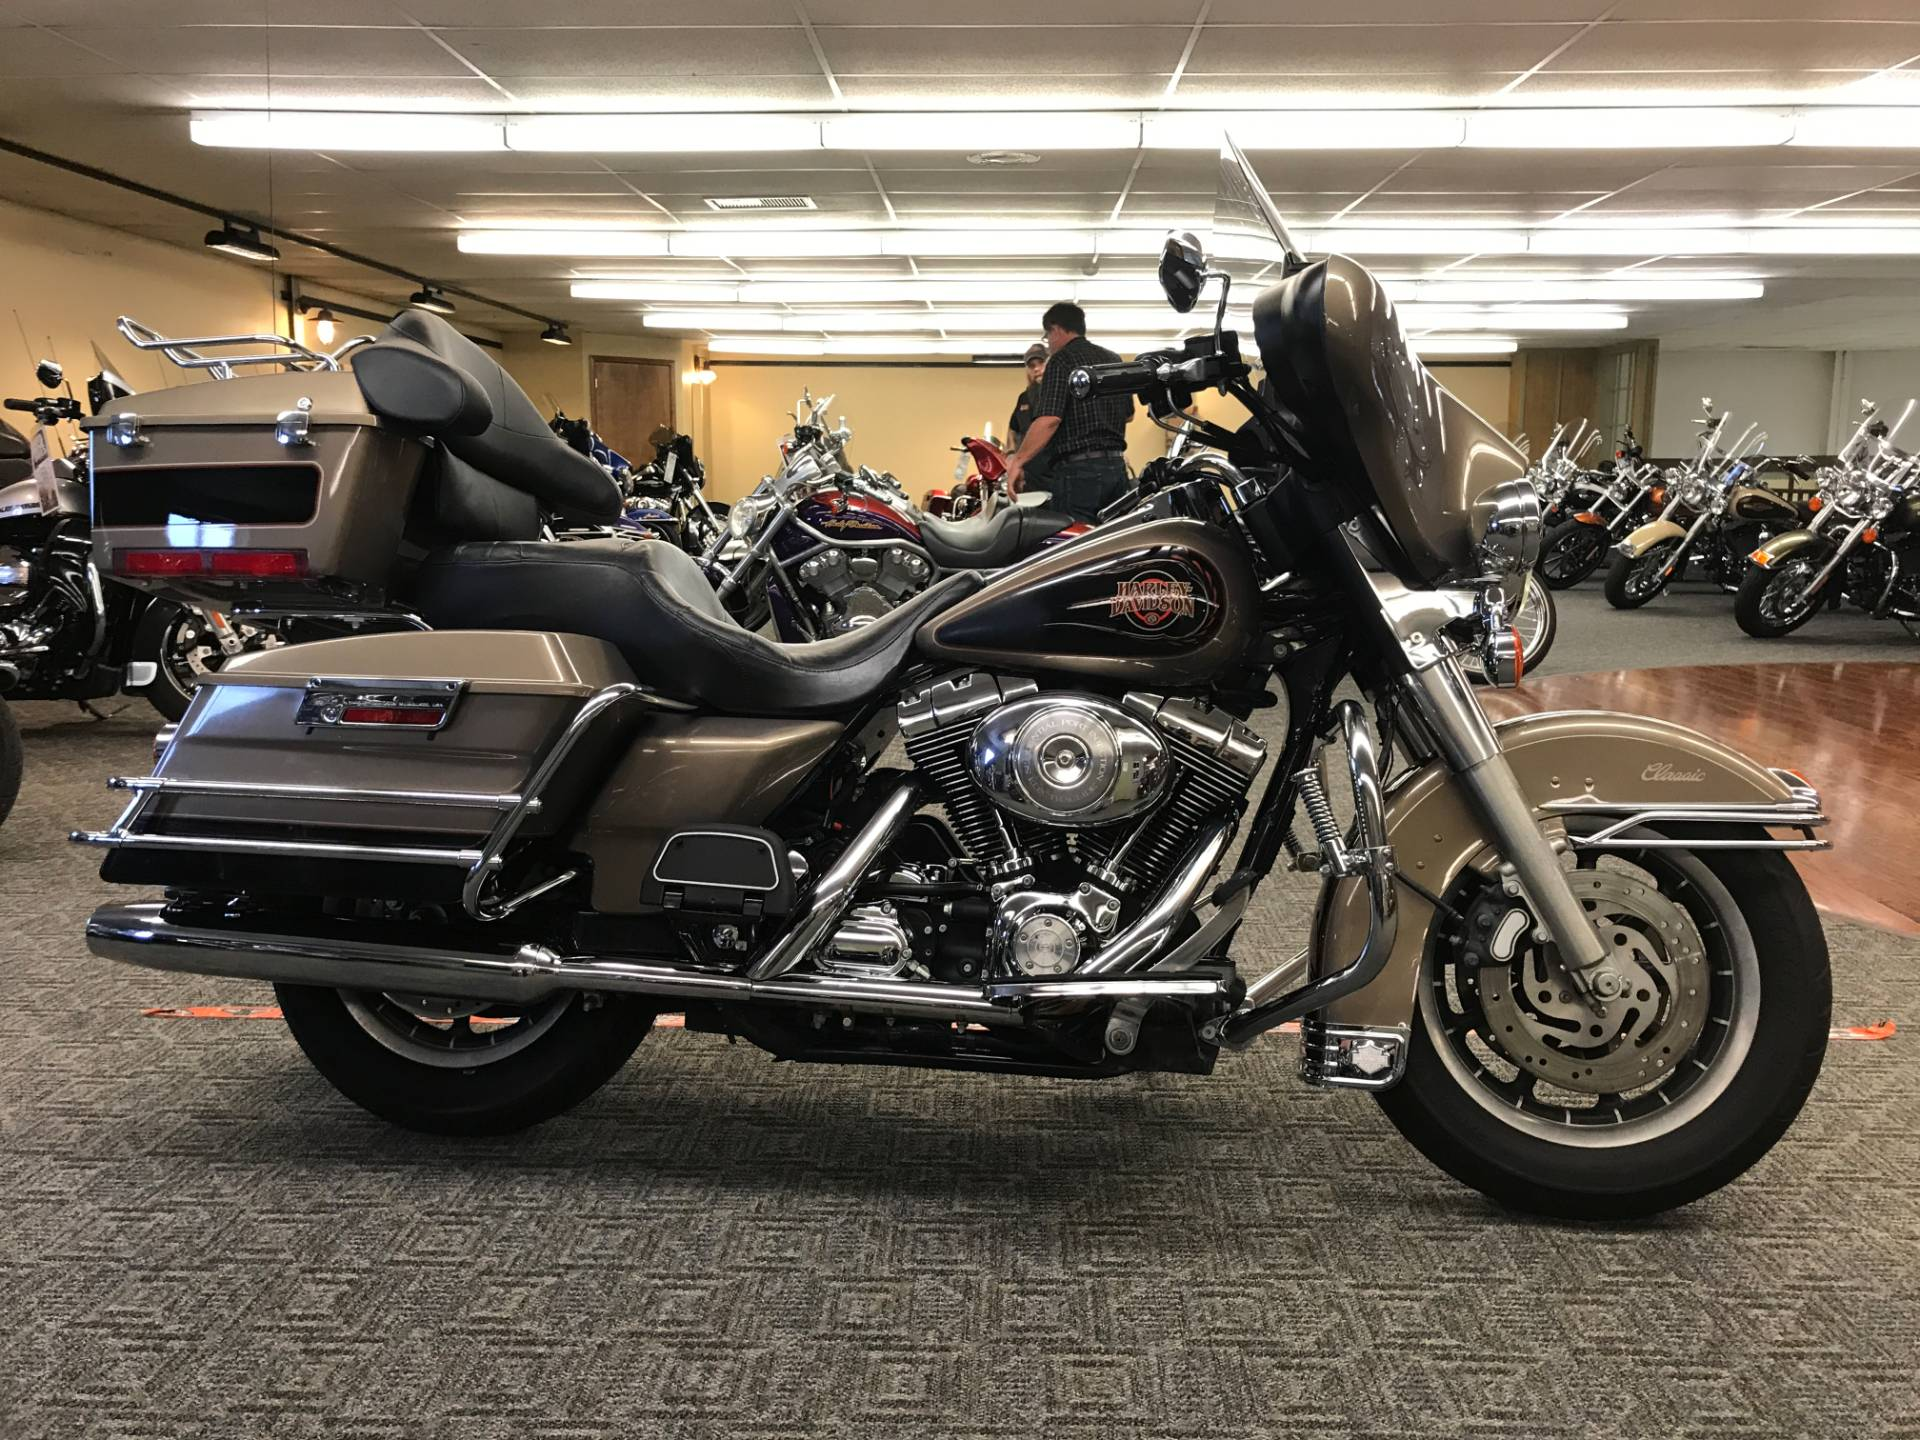 2004 Harley-Davidson FLHTC/FLHTCI Electra Glide® Classic in Fort Wayne, Indiana